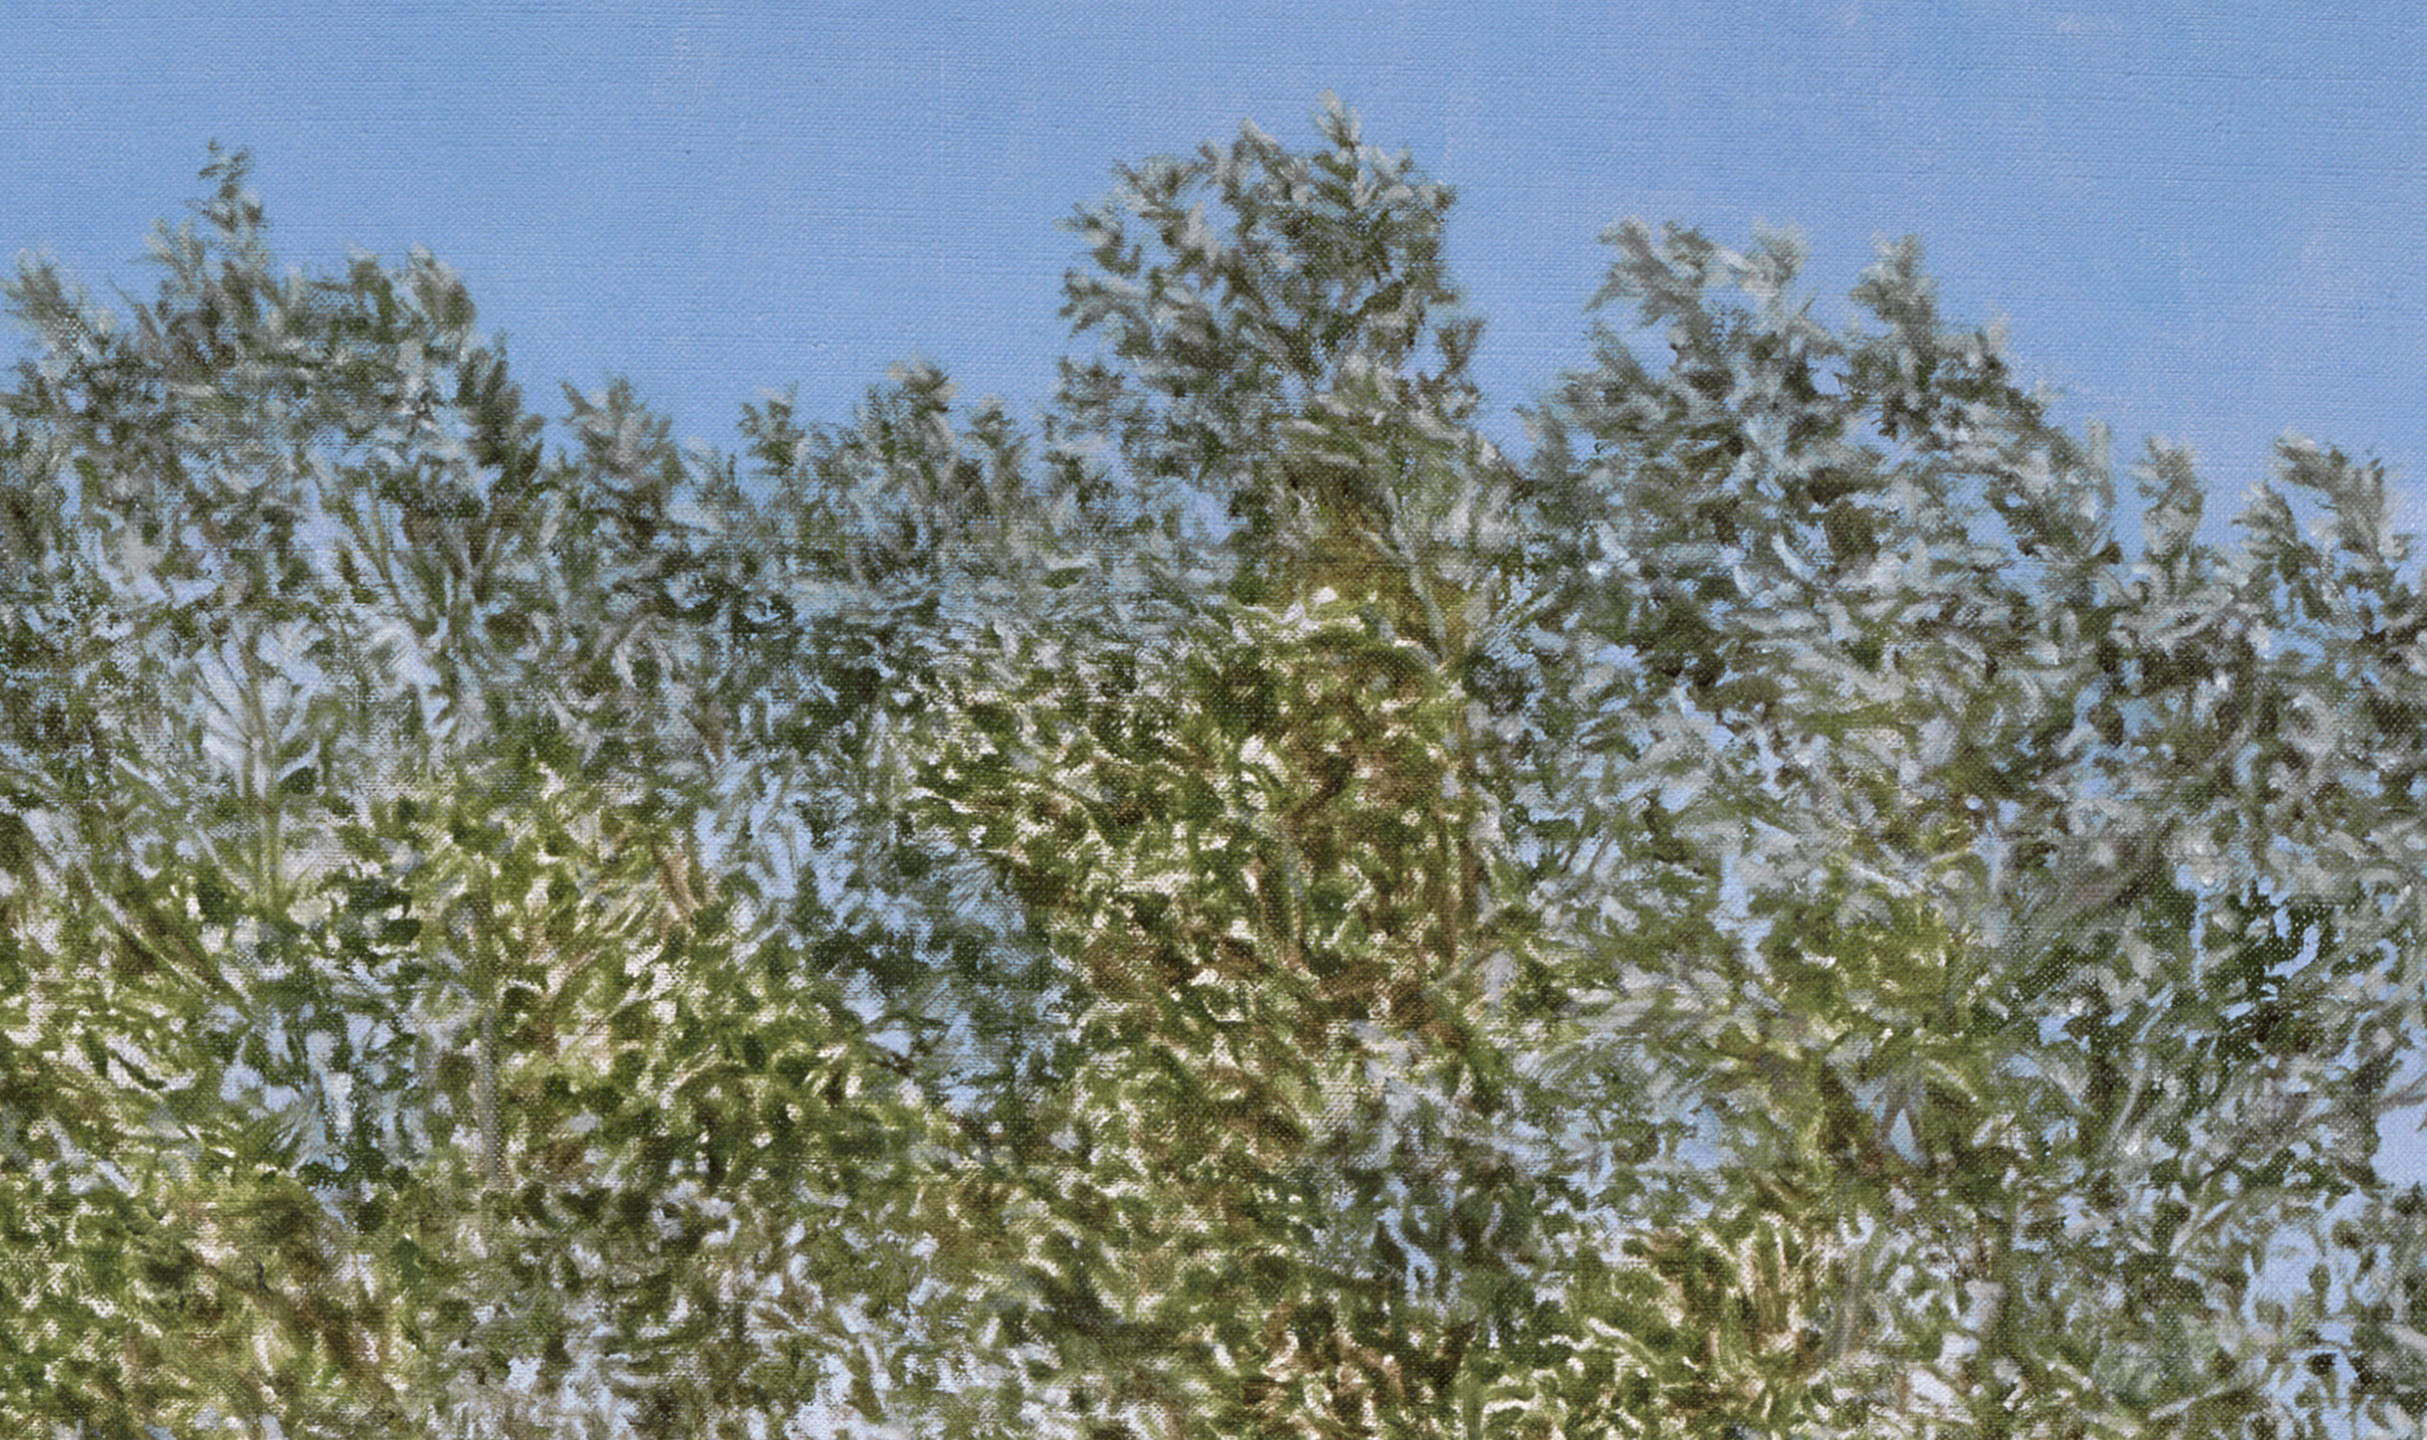 Montana Detour Tree  (Detail), 2014 Oil on linen 60 1/2 x 38 inches